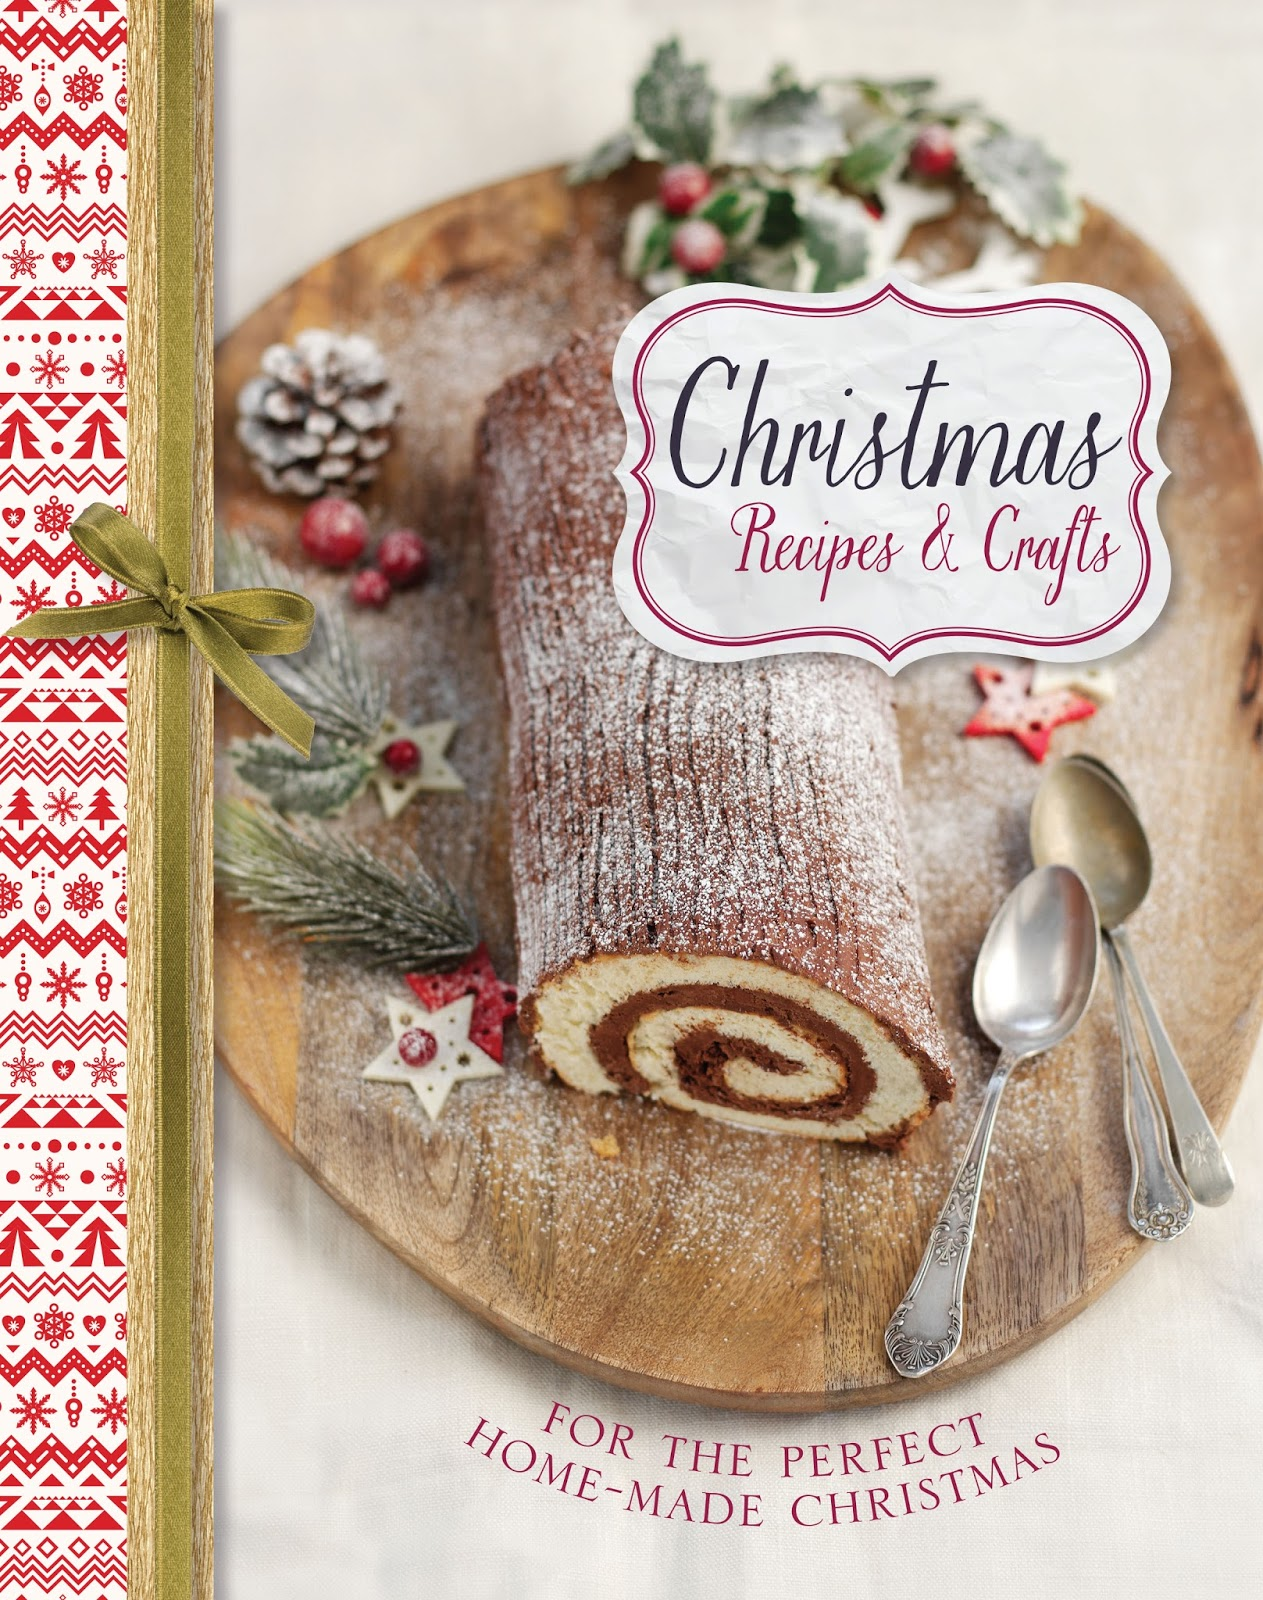 Hijacked by twins parragon love food christmas recipes and crafts this book has 10 chapters full of inspiring recipes they are perfect for christmas but also recipes that can be enjoyed at any time of the year forumfinder Choice Image